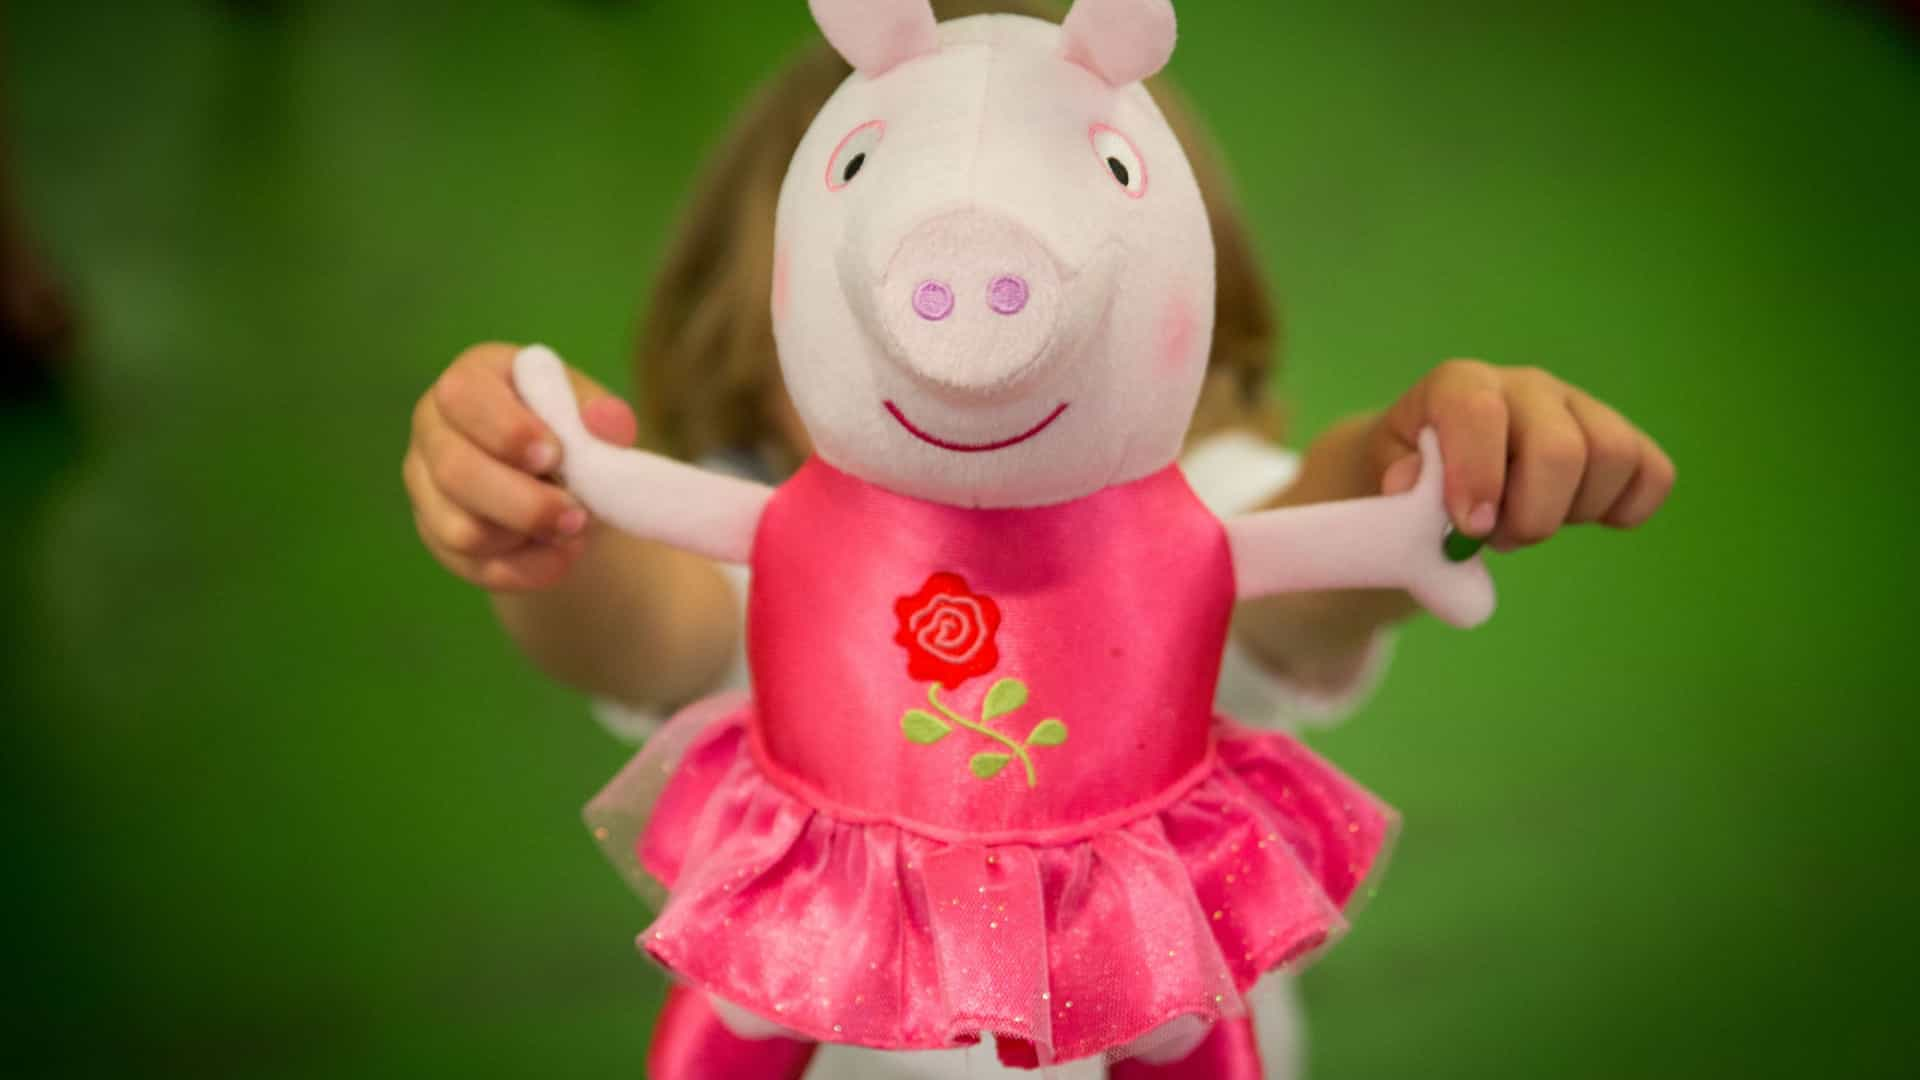 Peppa Pig E Subversiva A China Acha Que Sim E Decide Censurar Serie